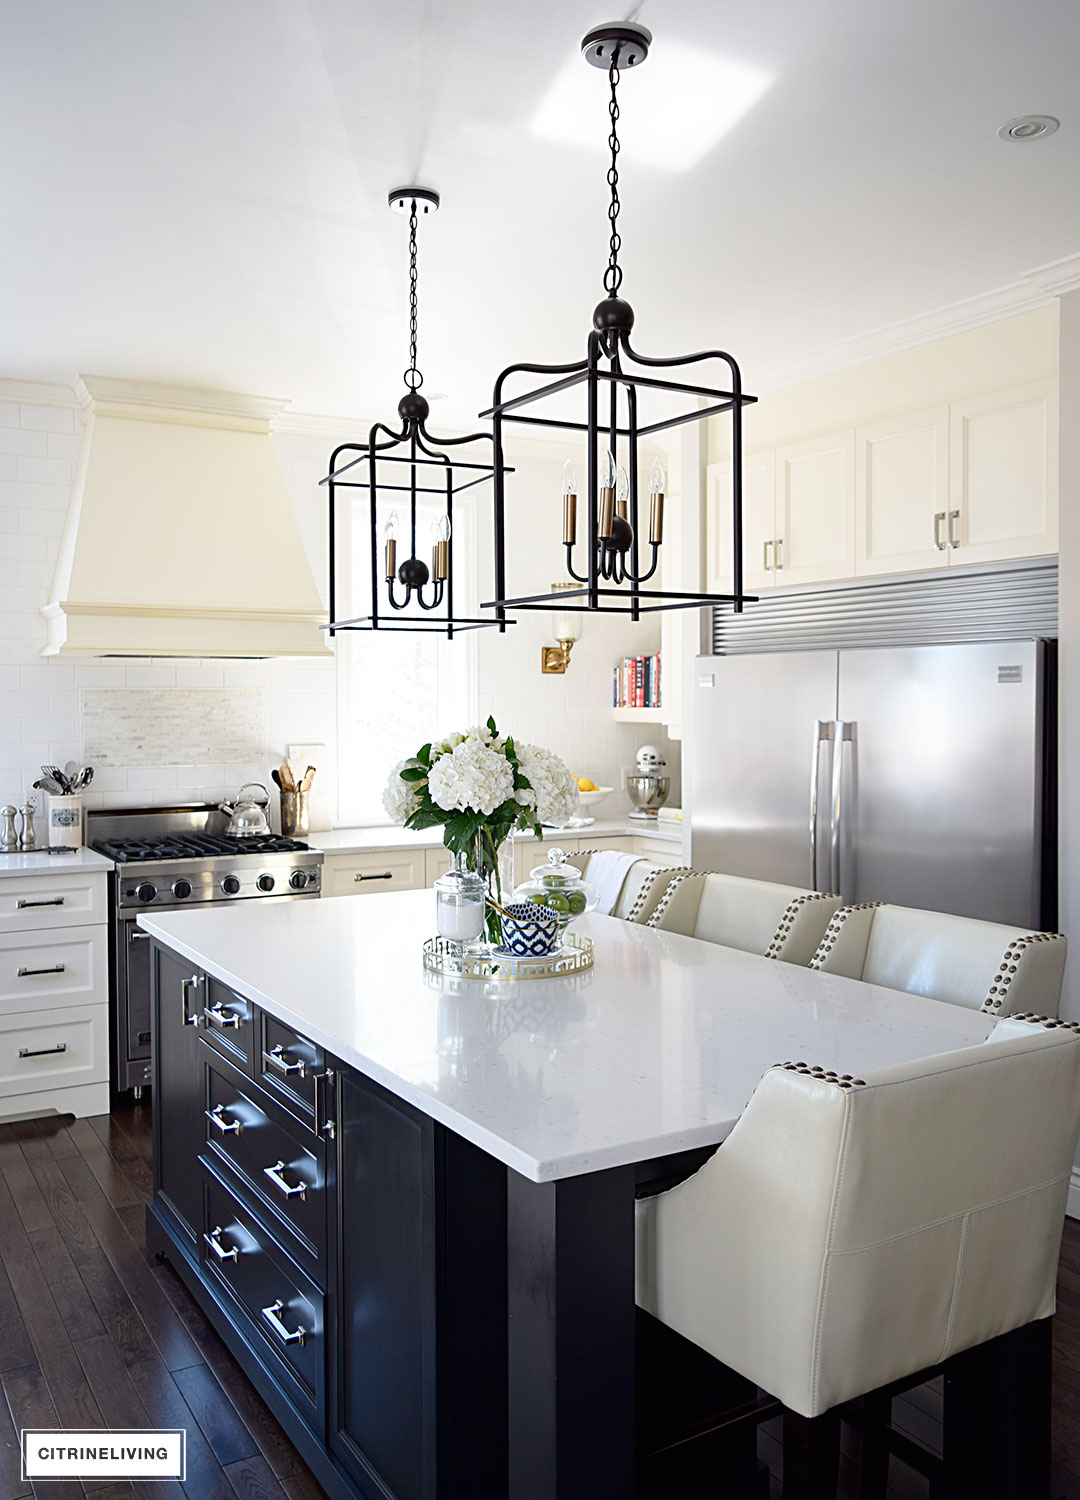 Bright and airy kitchen with lantern style pendant lighting over the island.